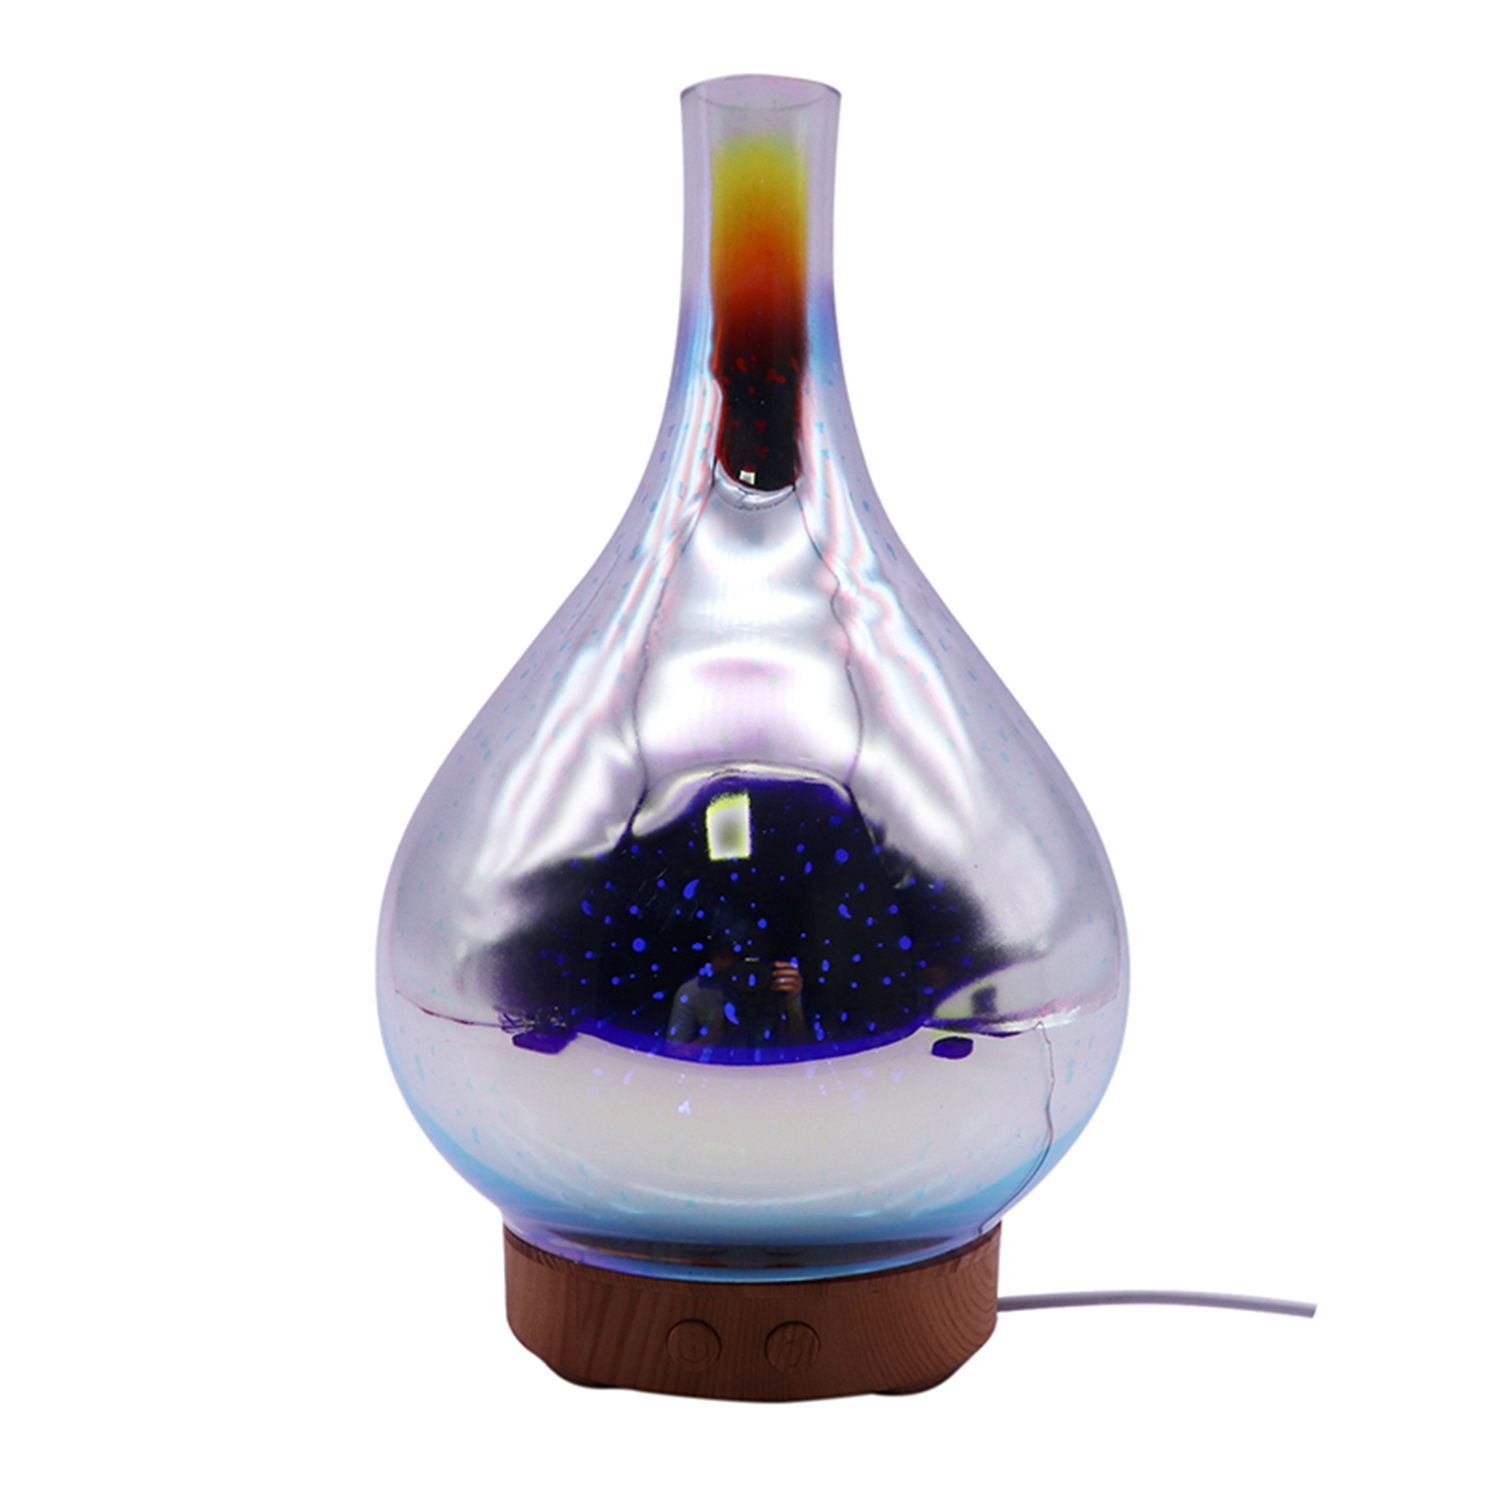 NEW-100ml Glass Aromatherapy Humidifier Essential Oil Diffuser Ultrasonic Humidifier 3d Aromatic Night Light Aroma Essential ONEW-100ml Glass Aromatherapy Humidifier Essential Oil Diffuser Ultrasonic Humidifier 3d Aromatic Night Light Aroma Essential O